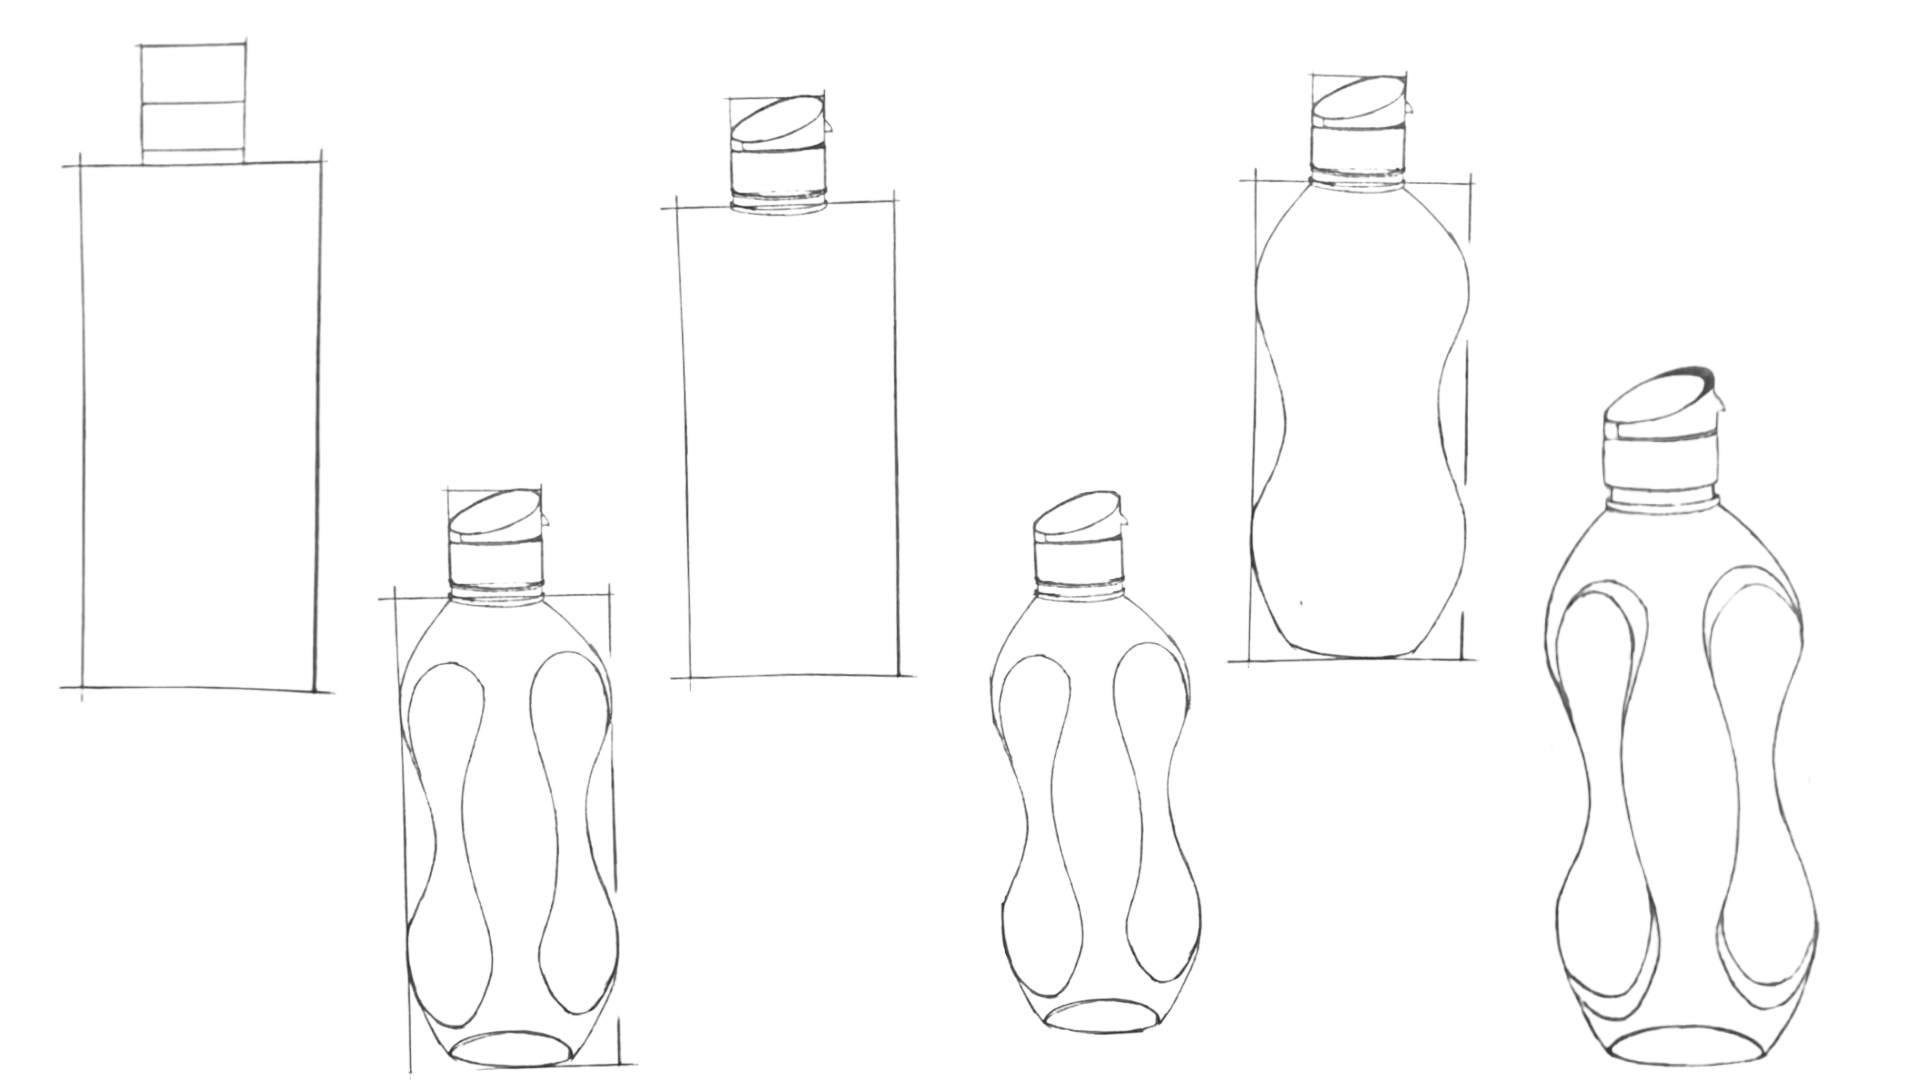 How To Draw a Bottle Step by Step